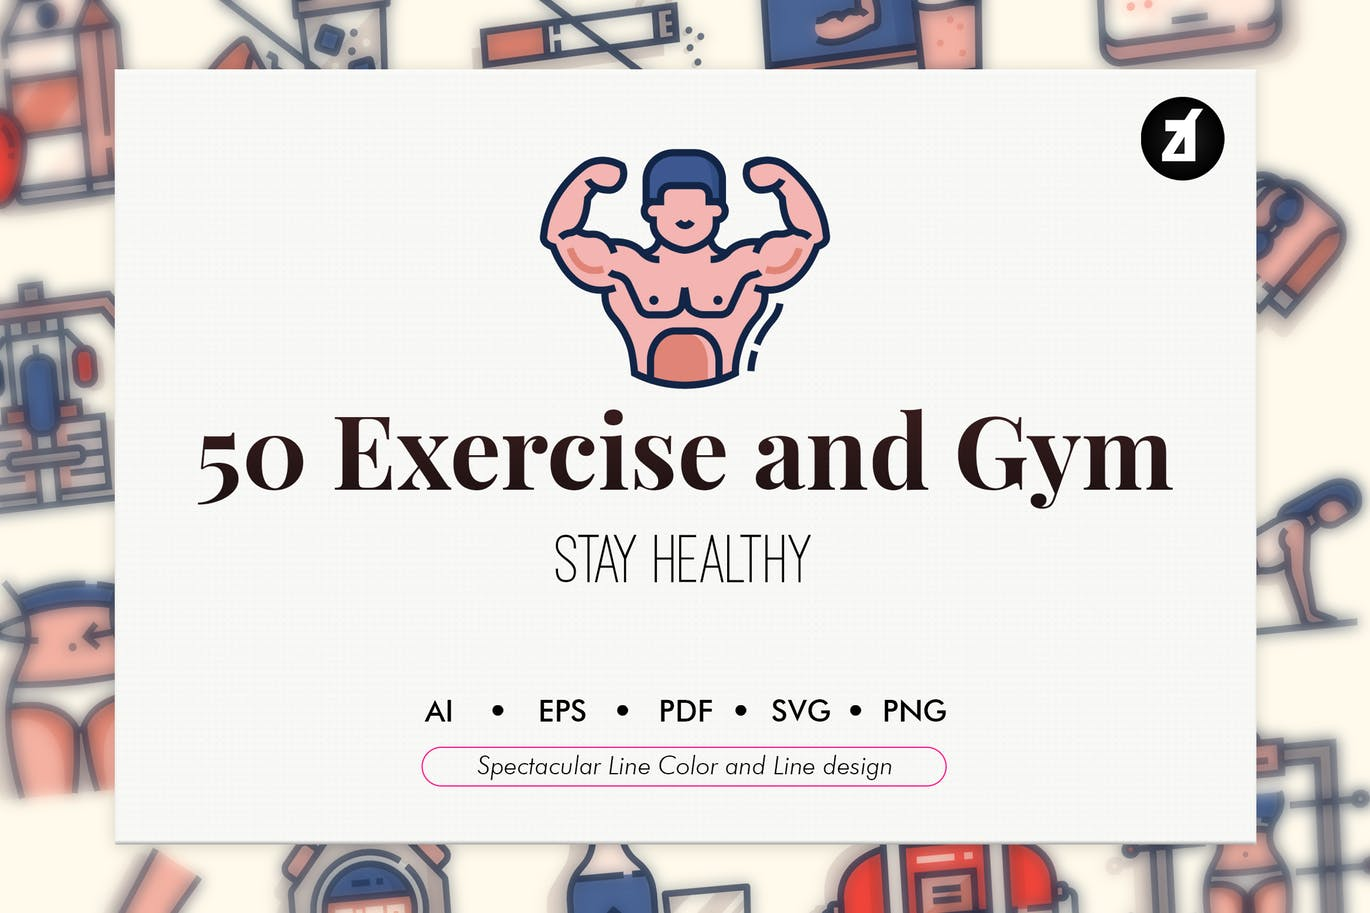 Exercise_Gym_LineColor.jpg